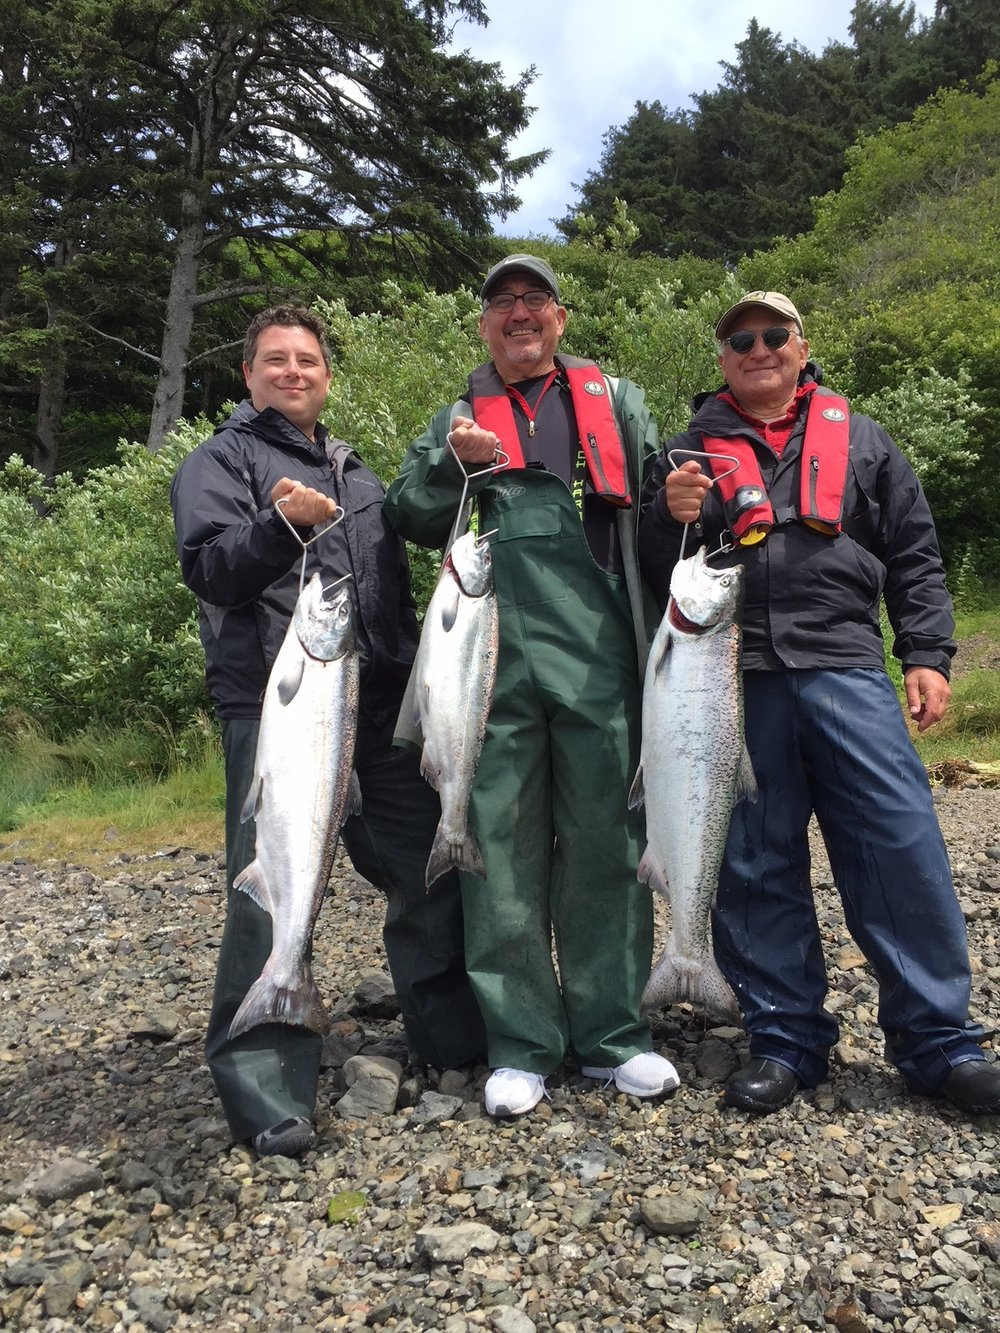 Dale Penn II, along with Tom Eiland and Norm Eder, showing off their prize catches